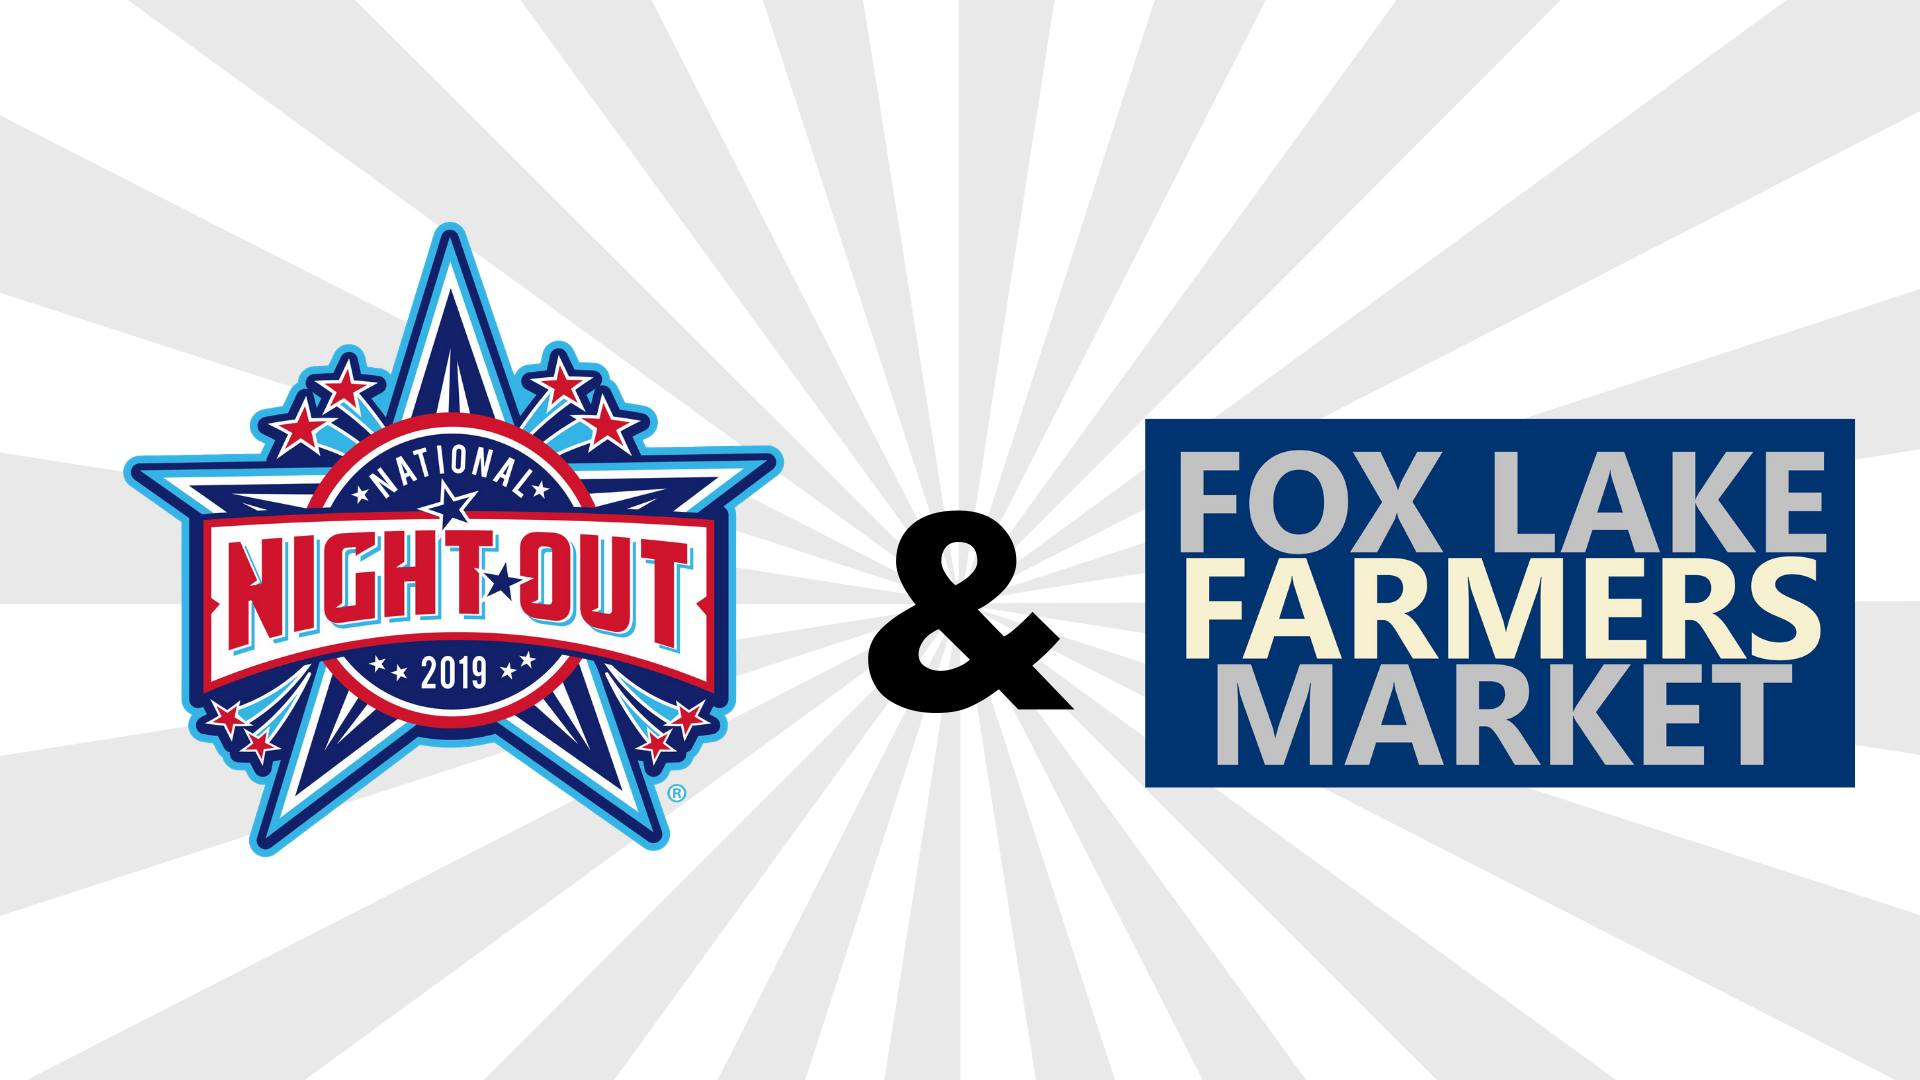 Fox Lake's National Night Out at the Fox Lake Farmers Market